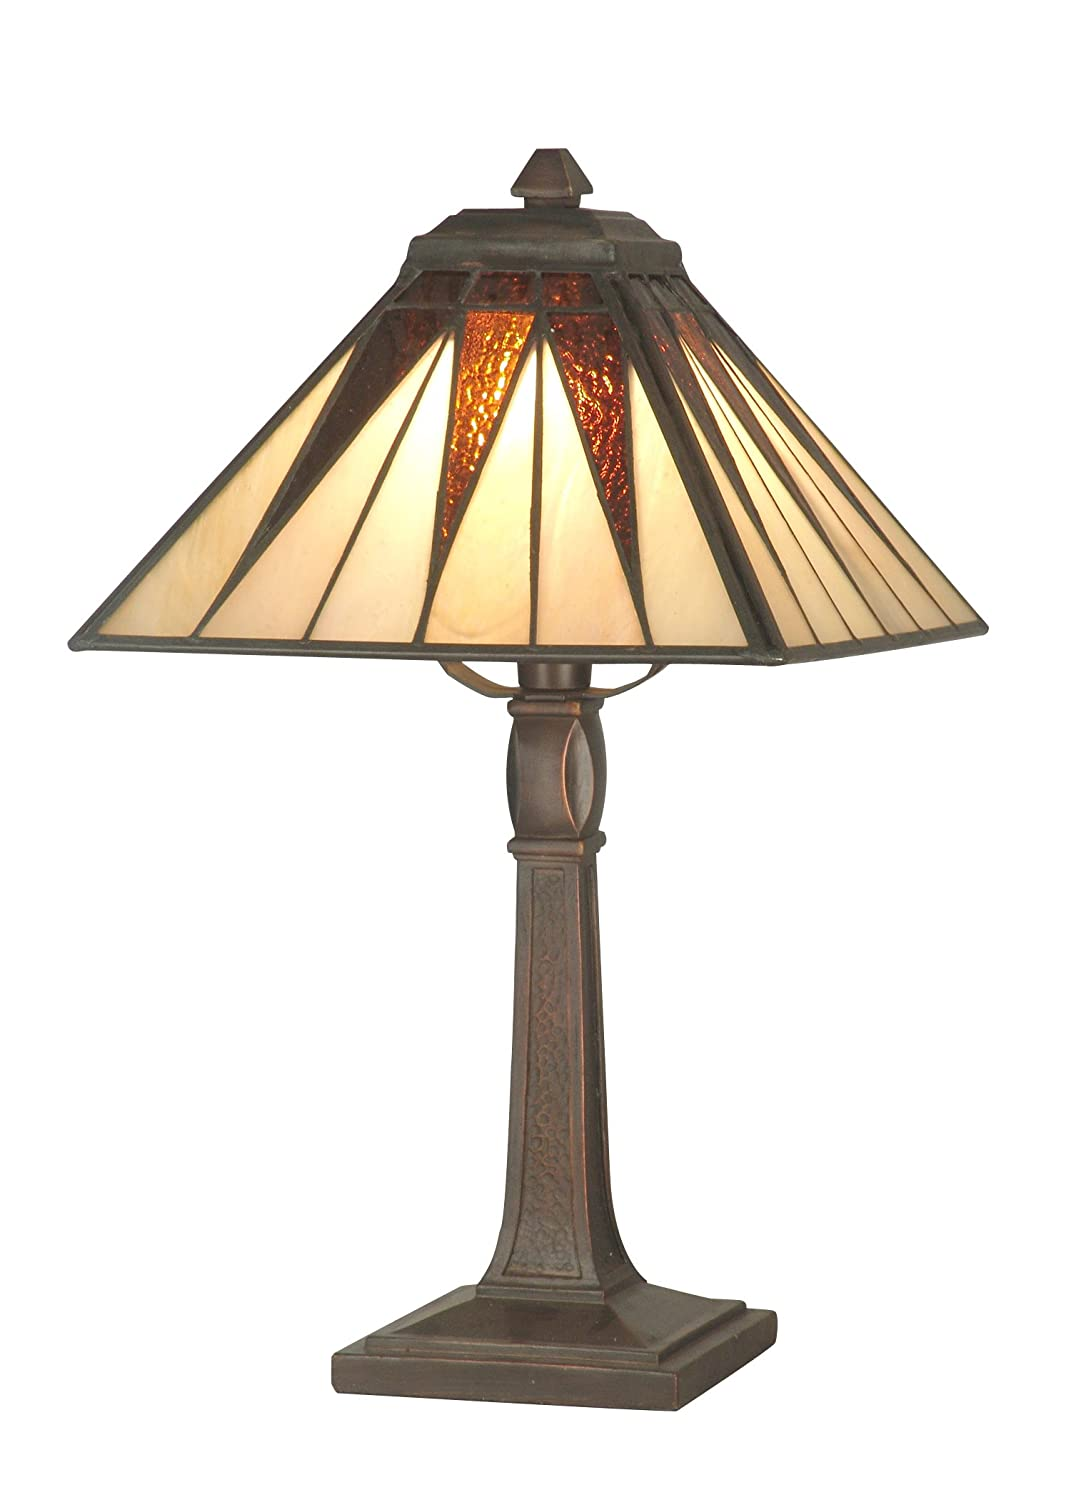 Dale tiffany ta70680 cooper accent lamp antique bronze and art dale tiffany ta70680 cooper accent lamp antique bronze and art glass shade table lamps amazon geotapseo Image collections